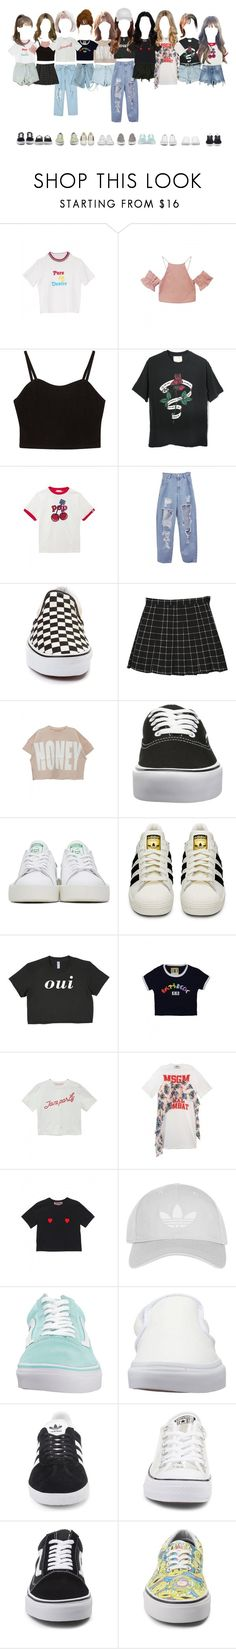 """""""ARIA •• practice"""" by lumin-aria ❤ liked on Polyvore featuring Vans, StyleNanda, adidas Originals, adidas, Topshop and Converse"""